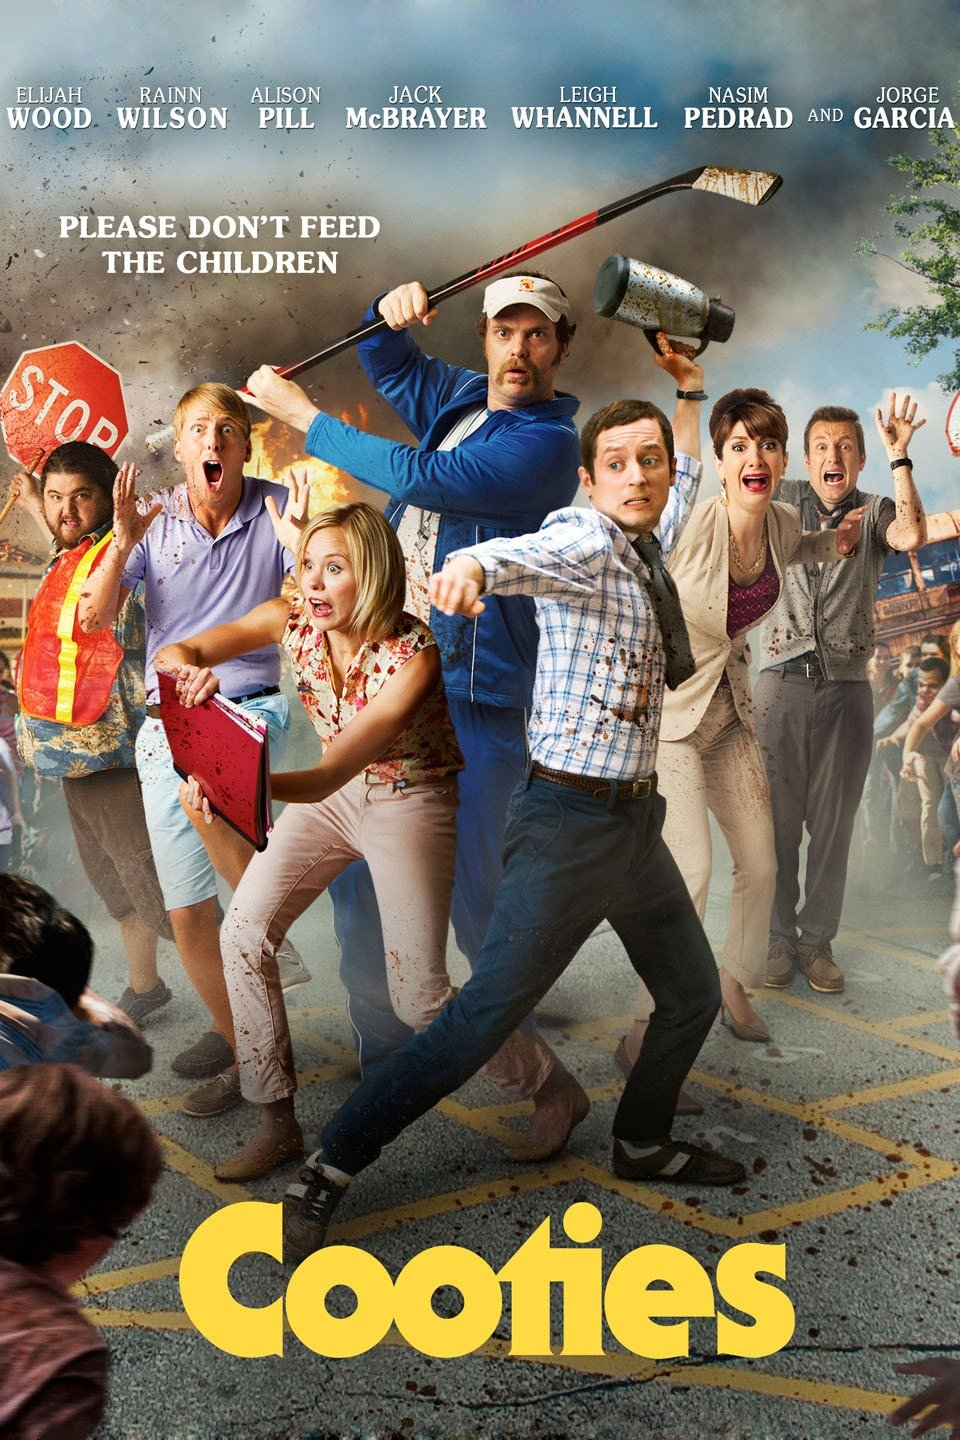 Movie poster for zombie film Cooties with cast comically fighting off unseen horde of zombies.